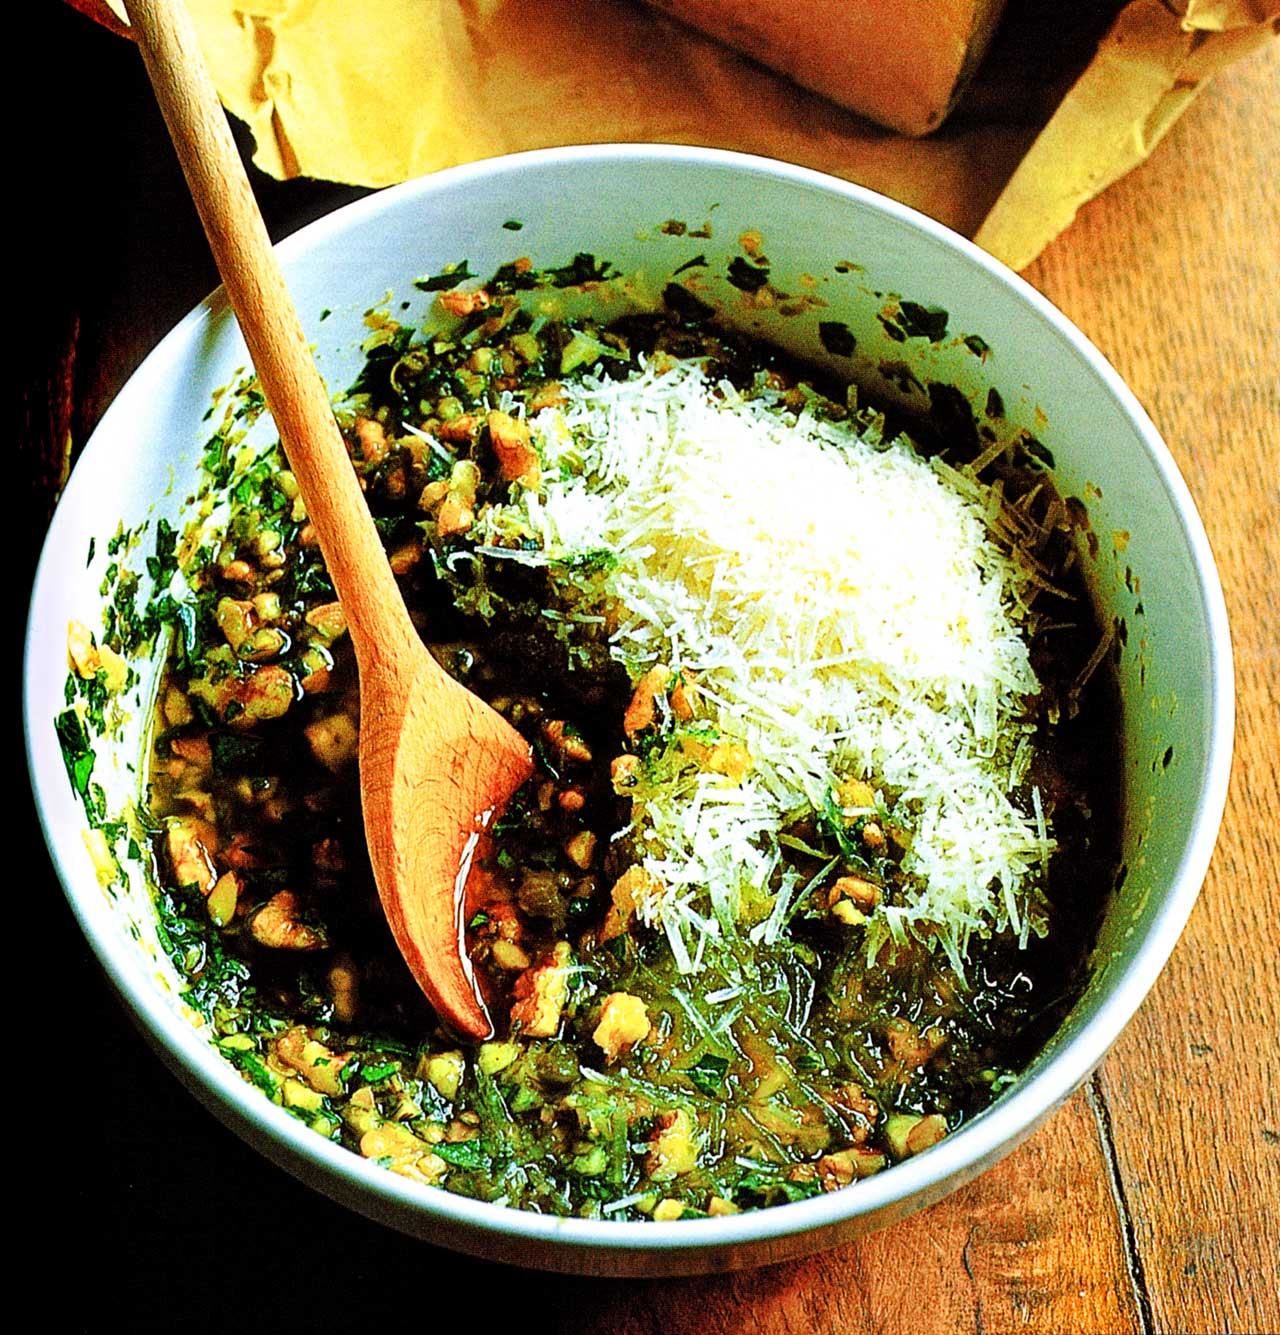 Easy pesto sauce recipe www.eatopic.com